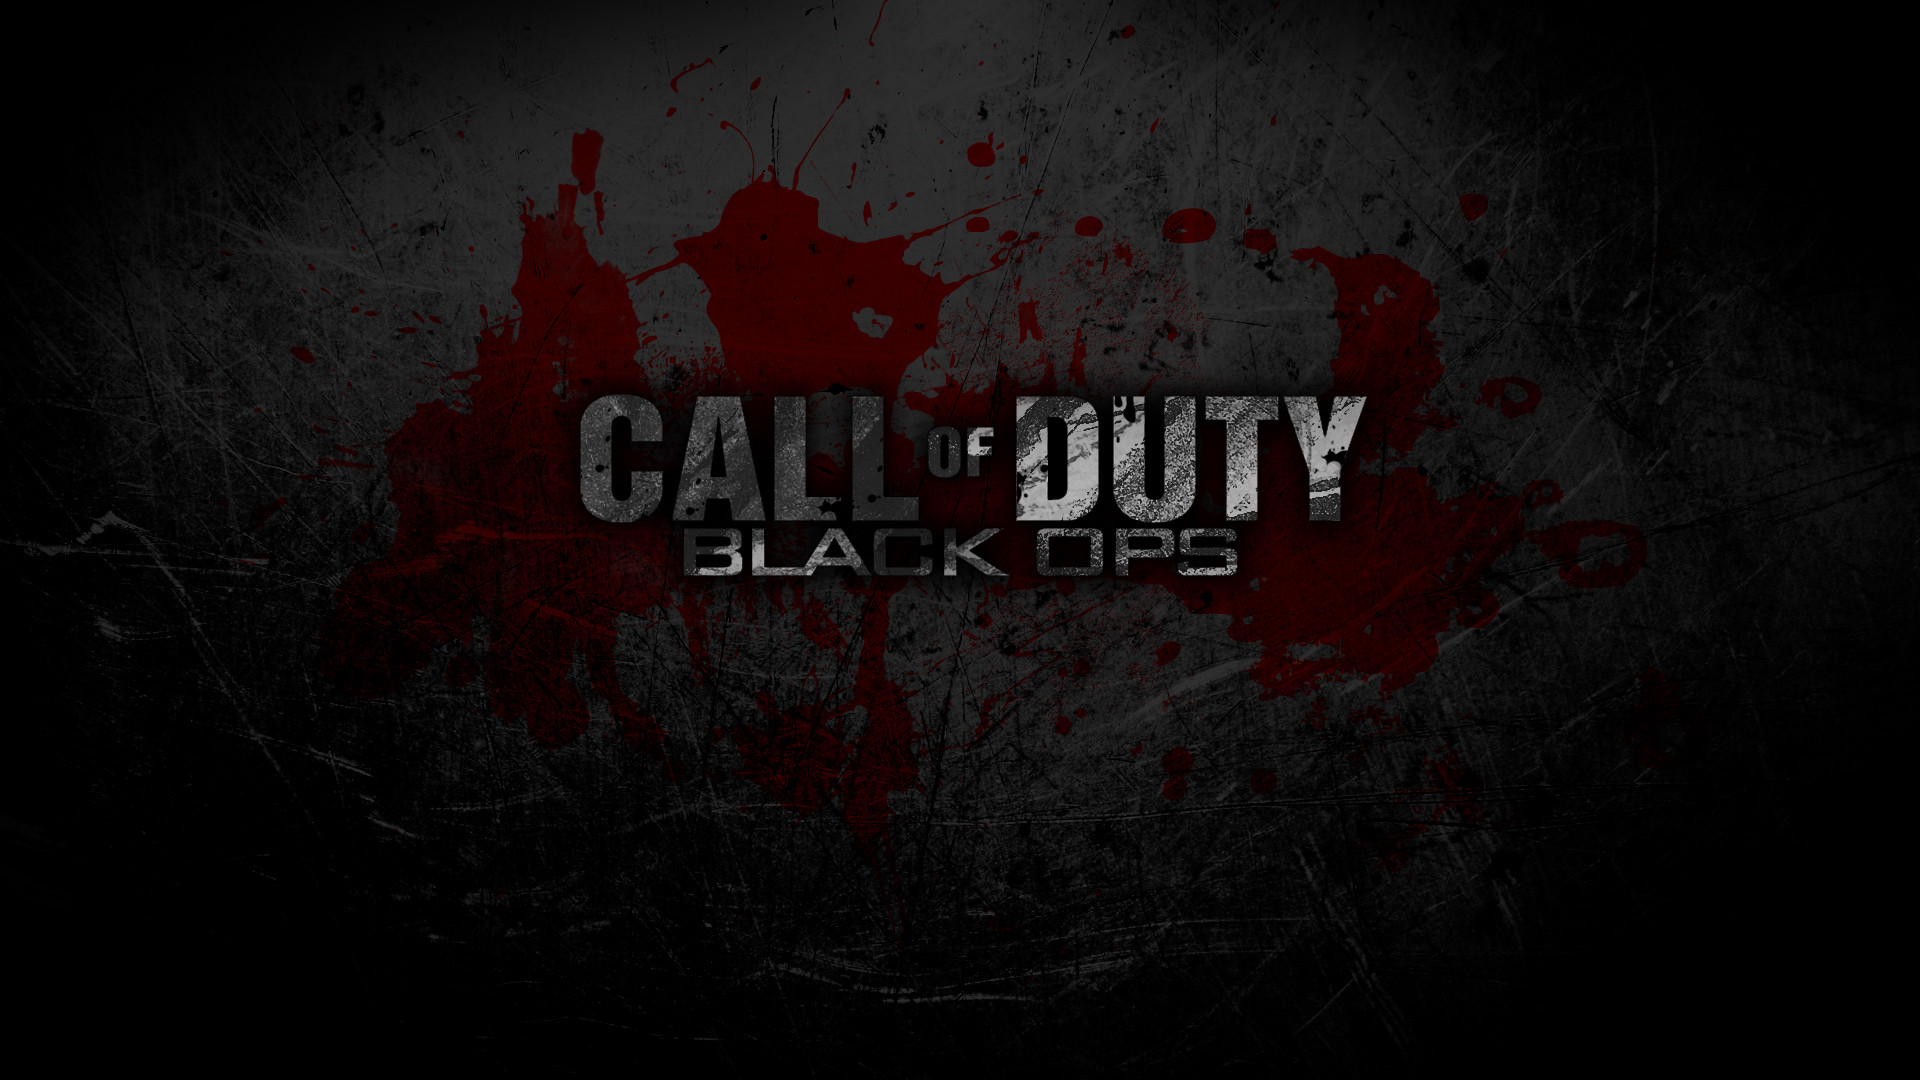 black ops | Call Of Duty Black Ops Wallpaper Pack GZ Â« GamerZone | Game  stuff | Pinterest | Black ops, Black ops zombies and Gaming